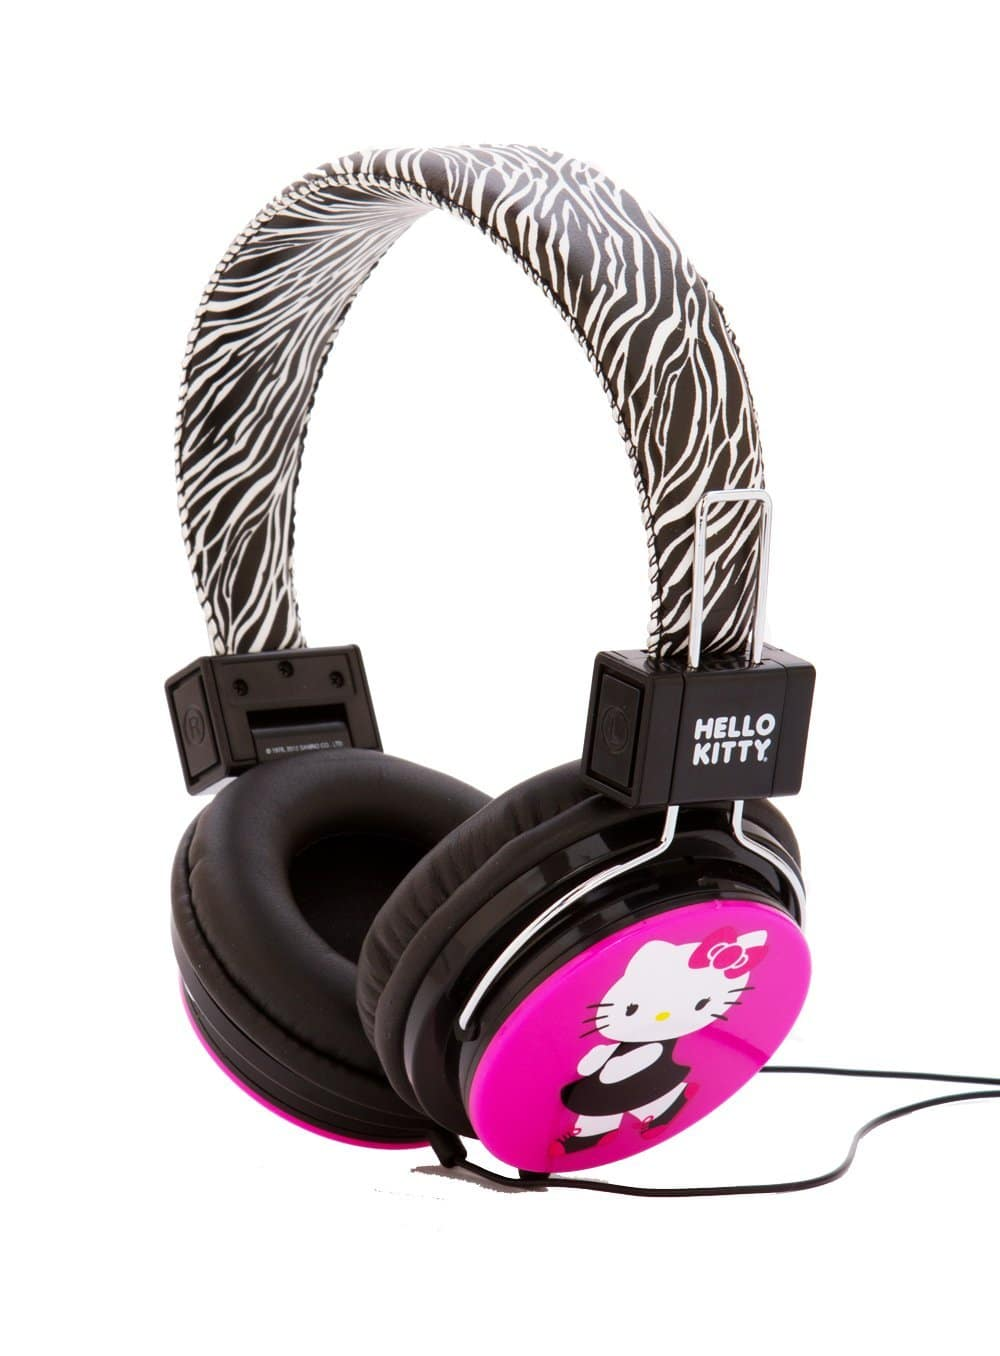 Hello Kitty Headphones - All You Need to Know